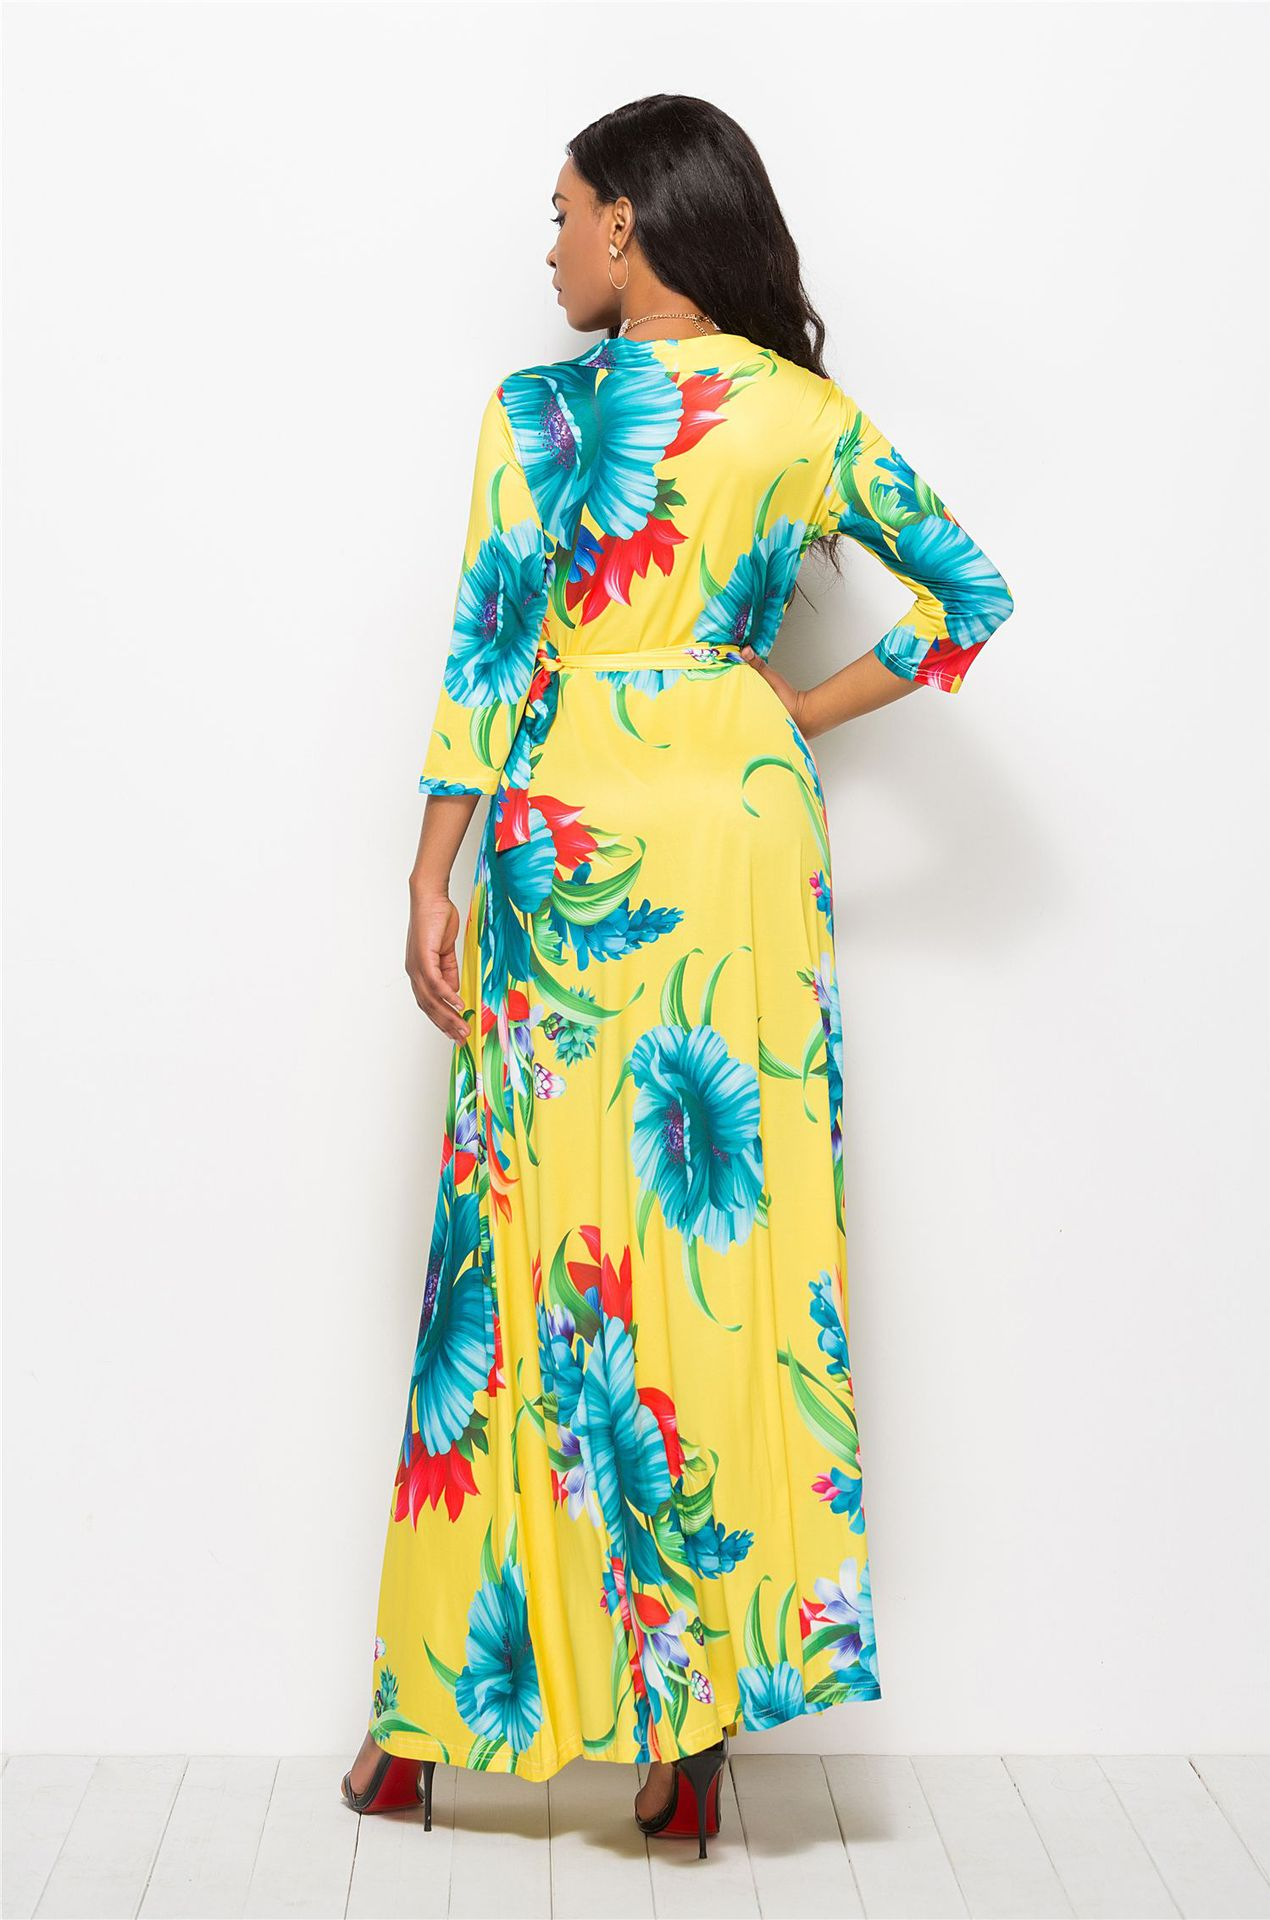 S XL women fashion v neck long sleeve winter autumn dress night evening party club dress long floral print maxi dress in Dresses from Women 39 s Clothing